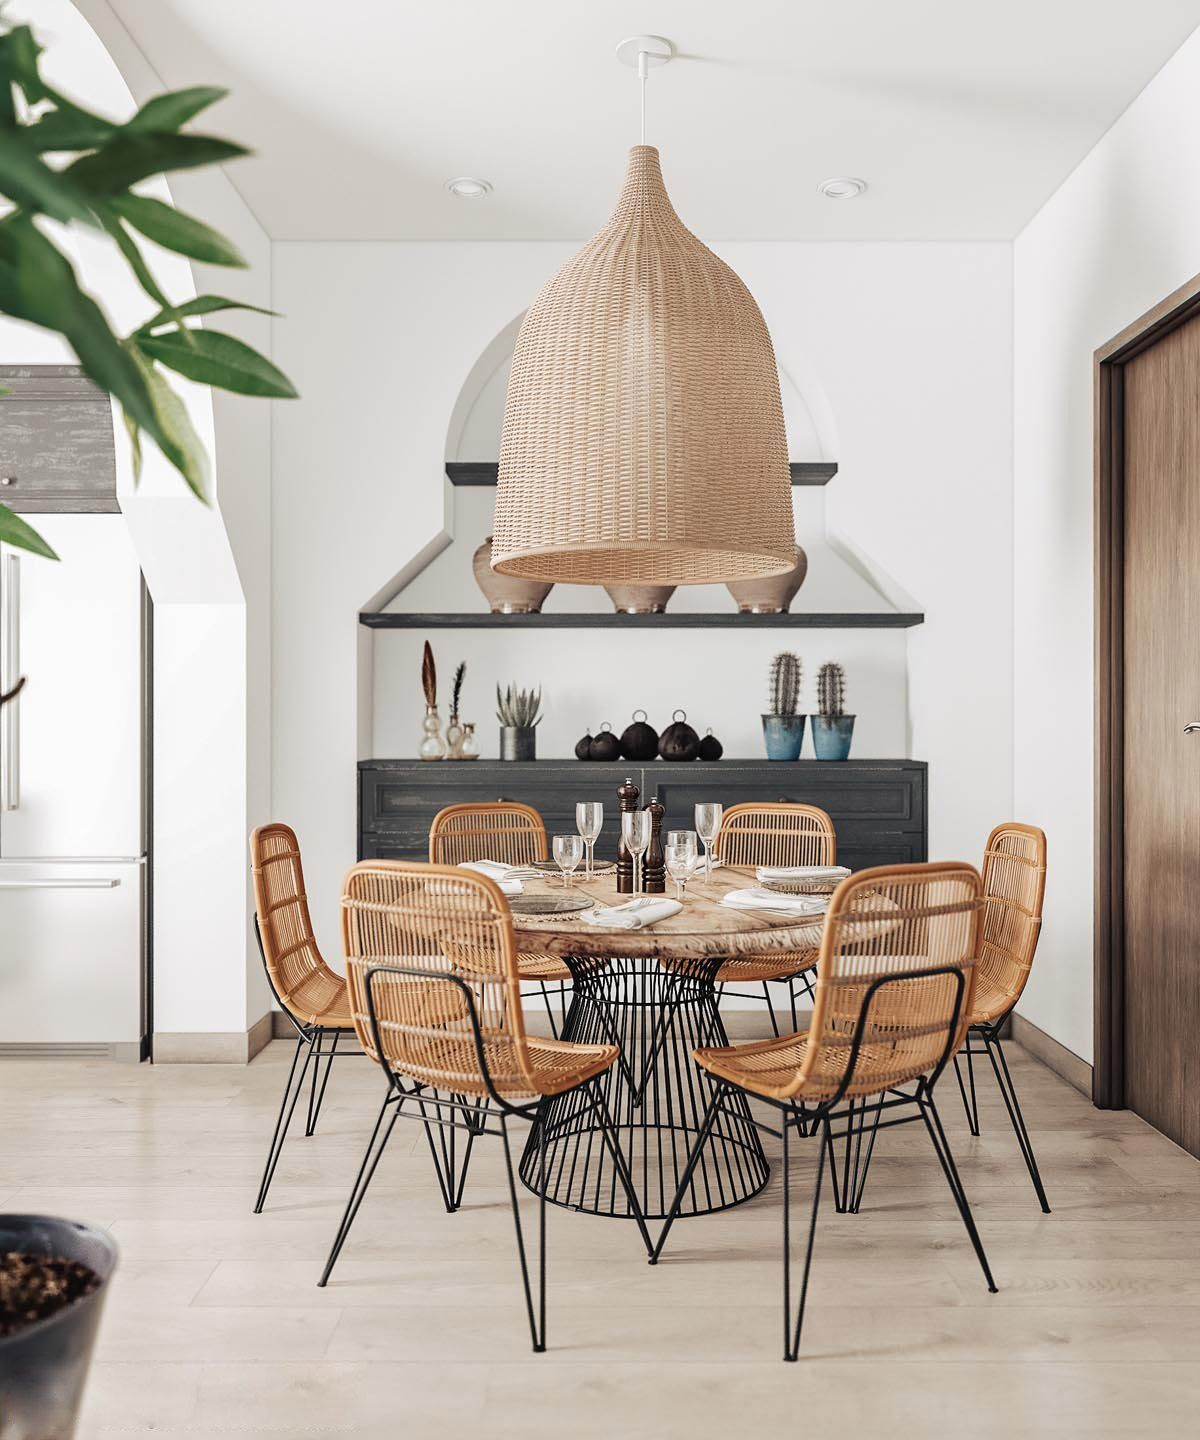 The Dining Area Is Anchored In Front Of A Beautiful Architectural Alcove With The Help Of Rustic Dining Room Farmhouse Dining Room Table Farmhouse Dining Room